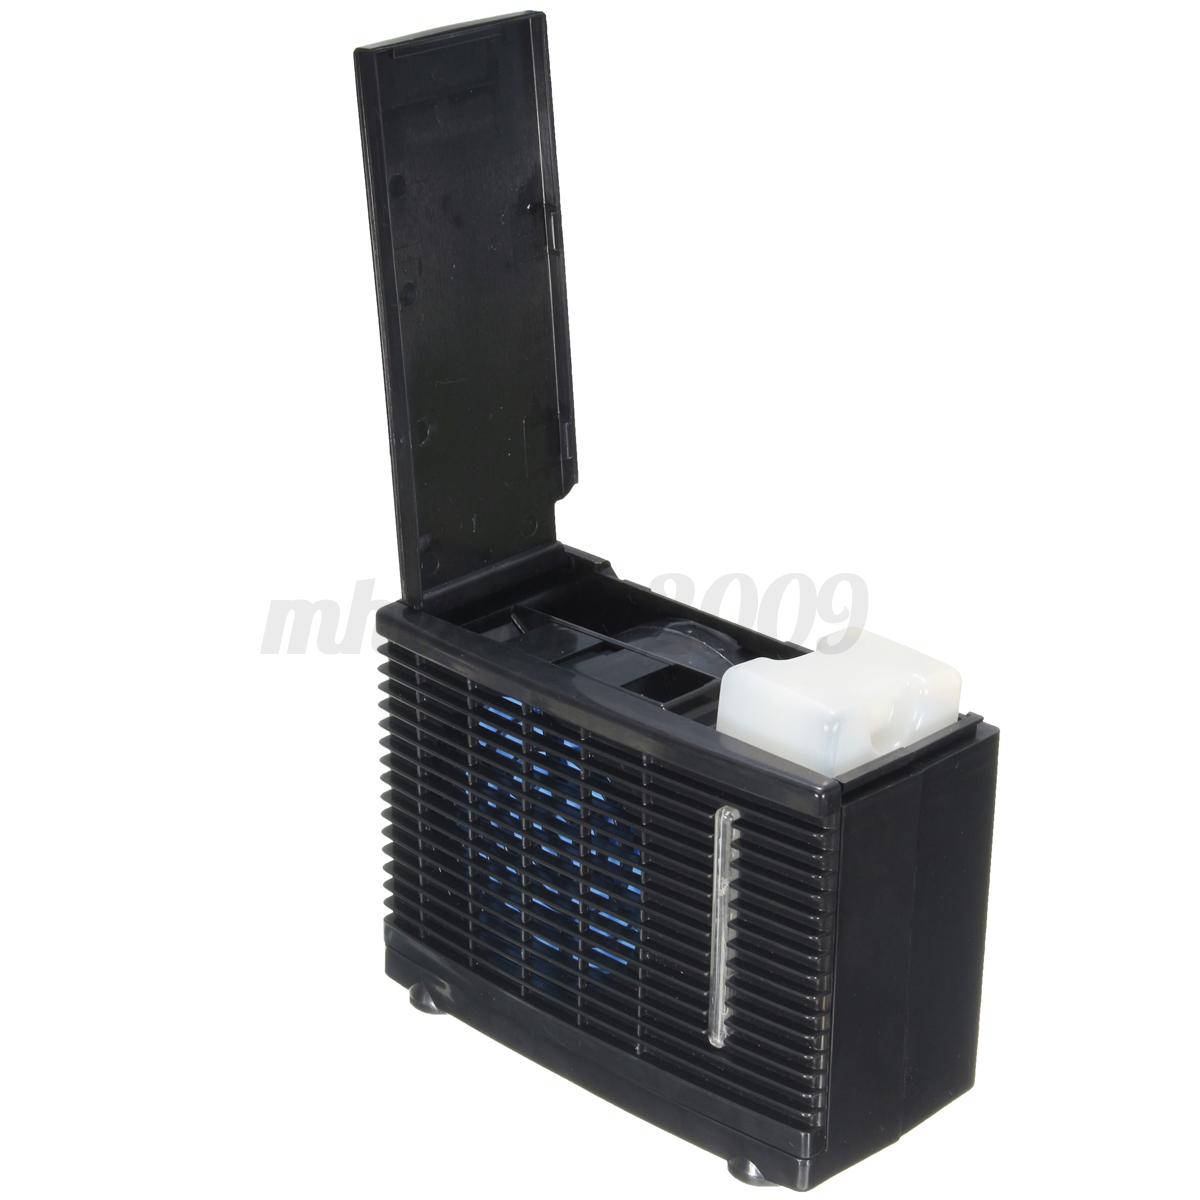 #3E618D 12V Portable Home Car Cooler Cooling Fan Water Ice  Recommended 6717 Swamp Cooler Fans pics with 1200x1200 px on helpvideos.info - Air Conditioners, Air Coolers and more